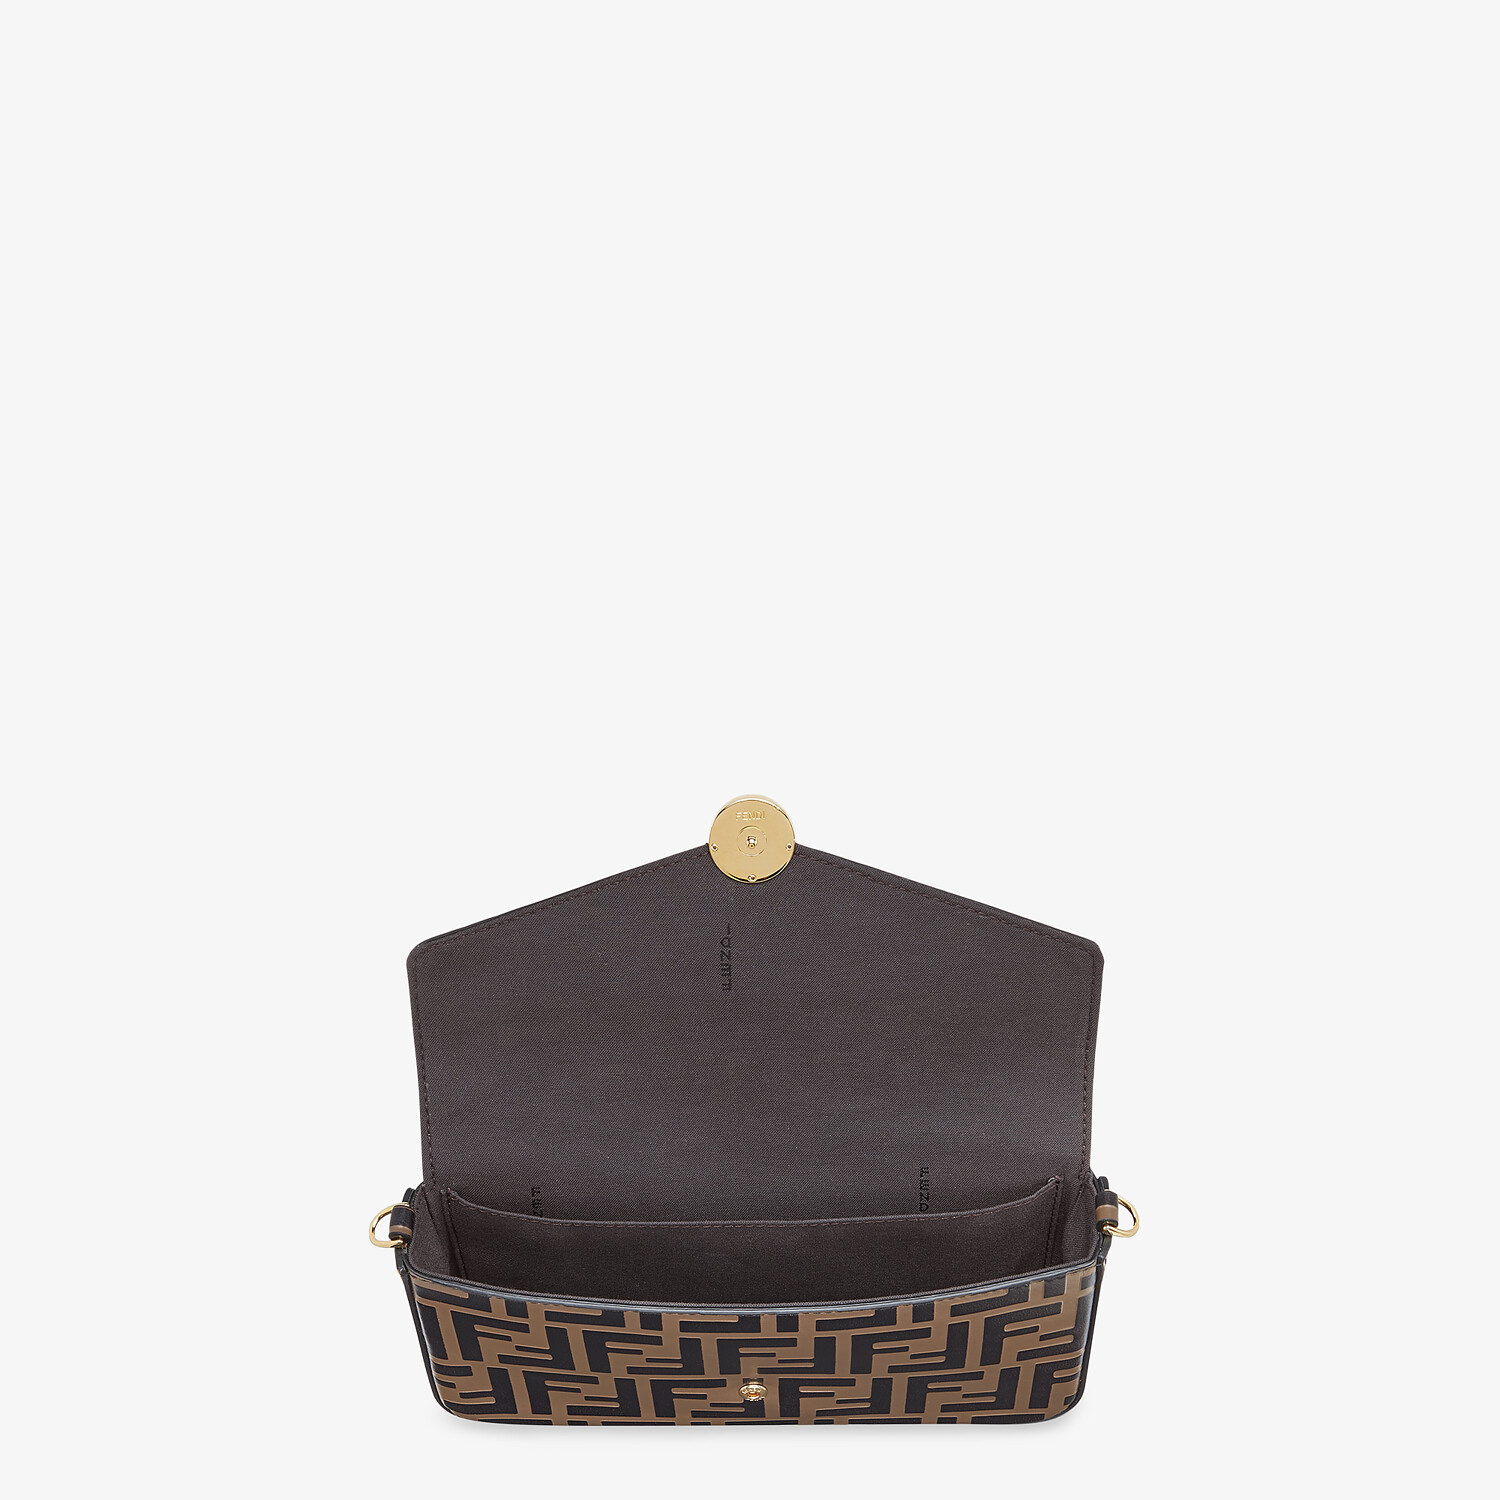 FENDI WALLET ON CHAIN WITH POUCHES - Brown leather mini-bag - view 5 detail